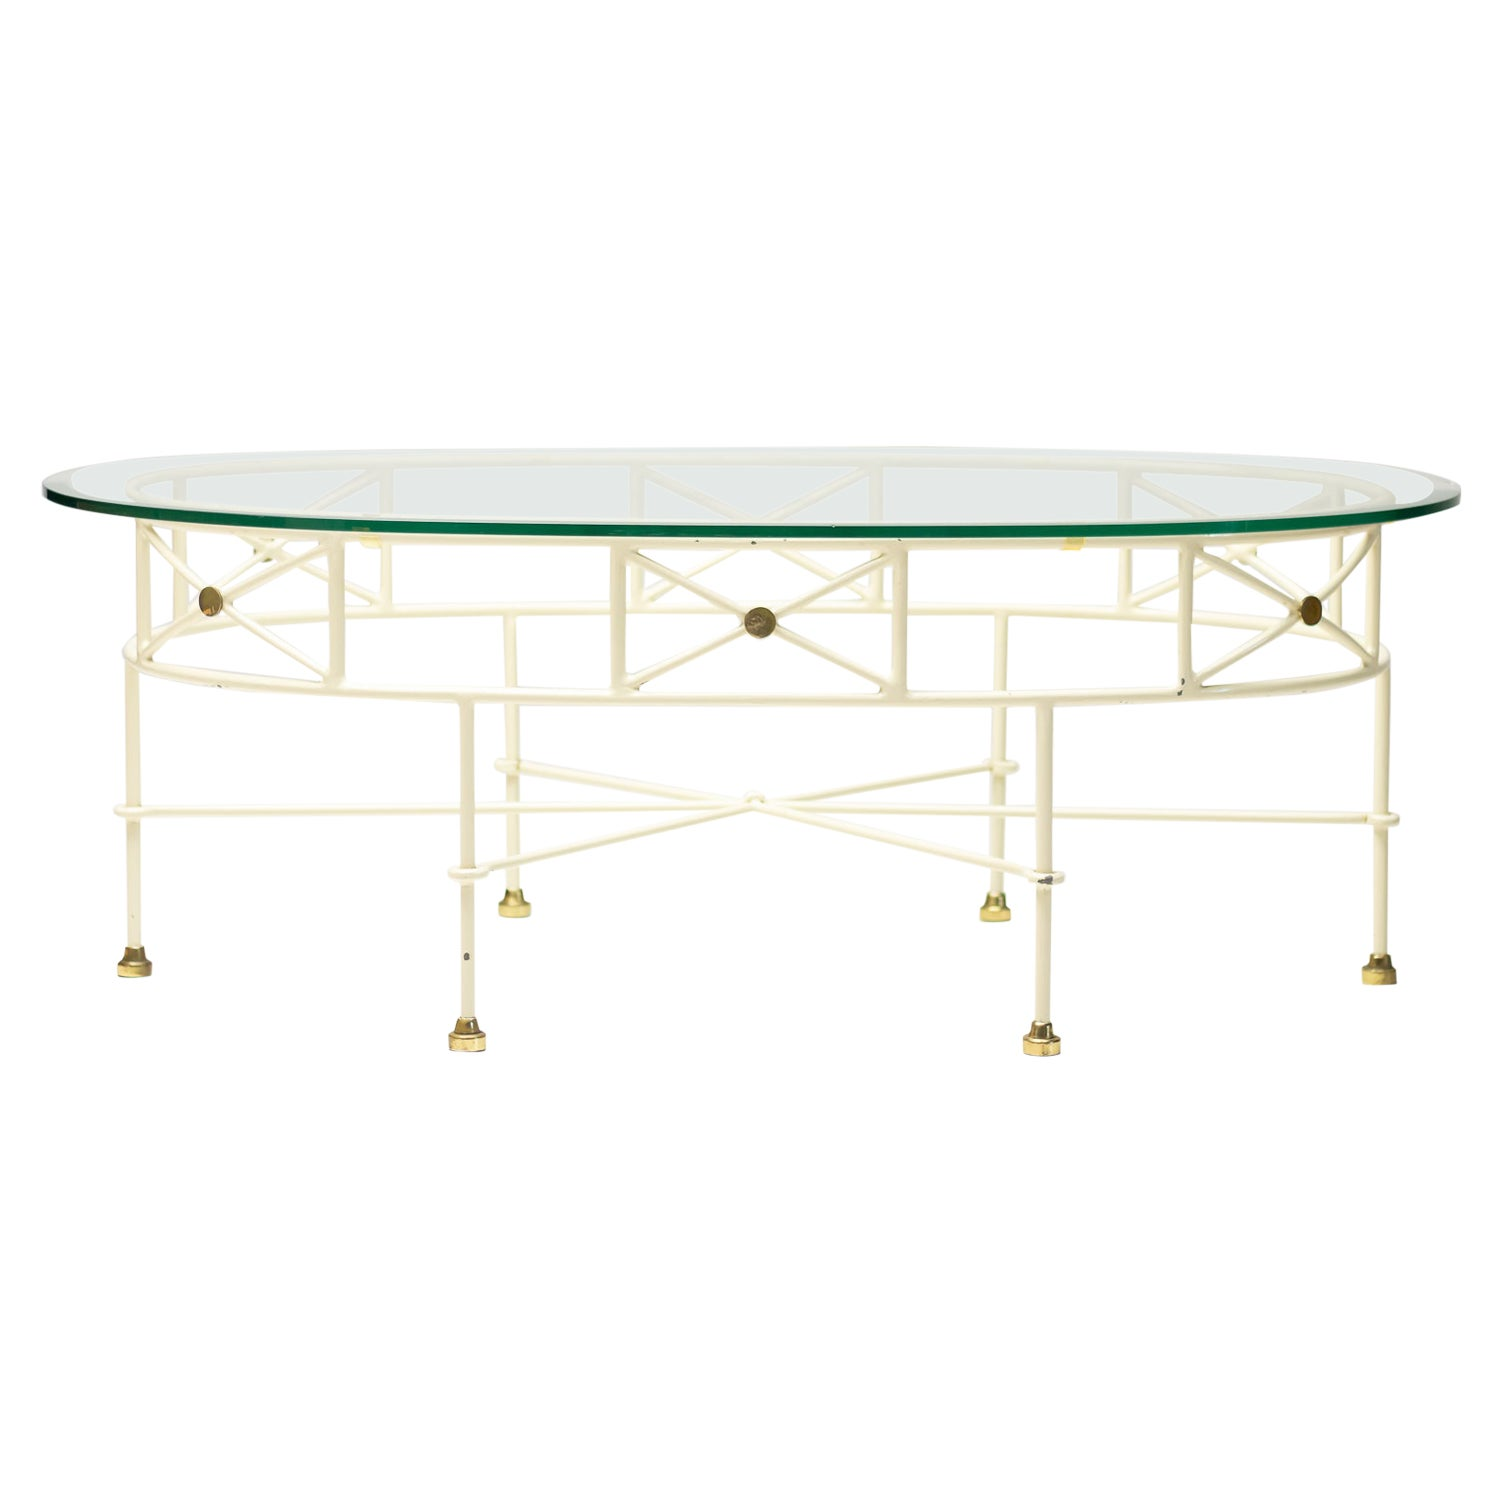 Architectural Italian Coffee Table